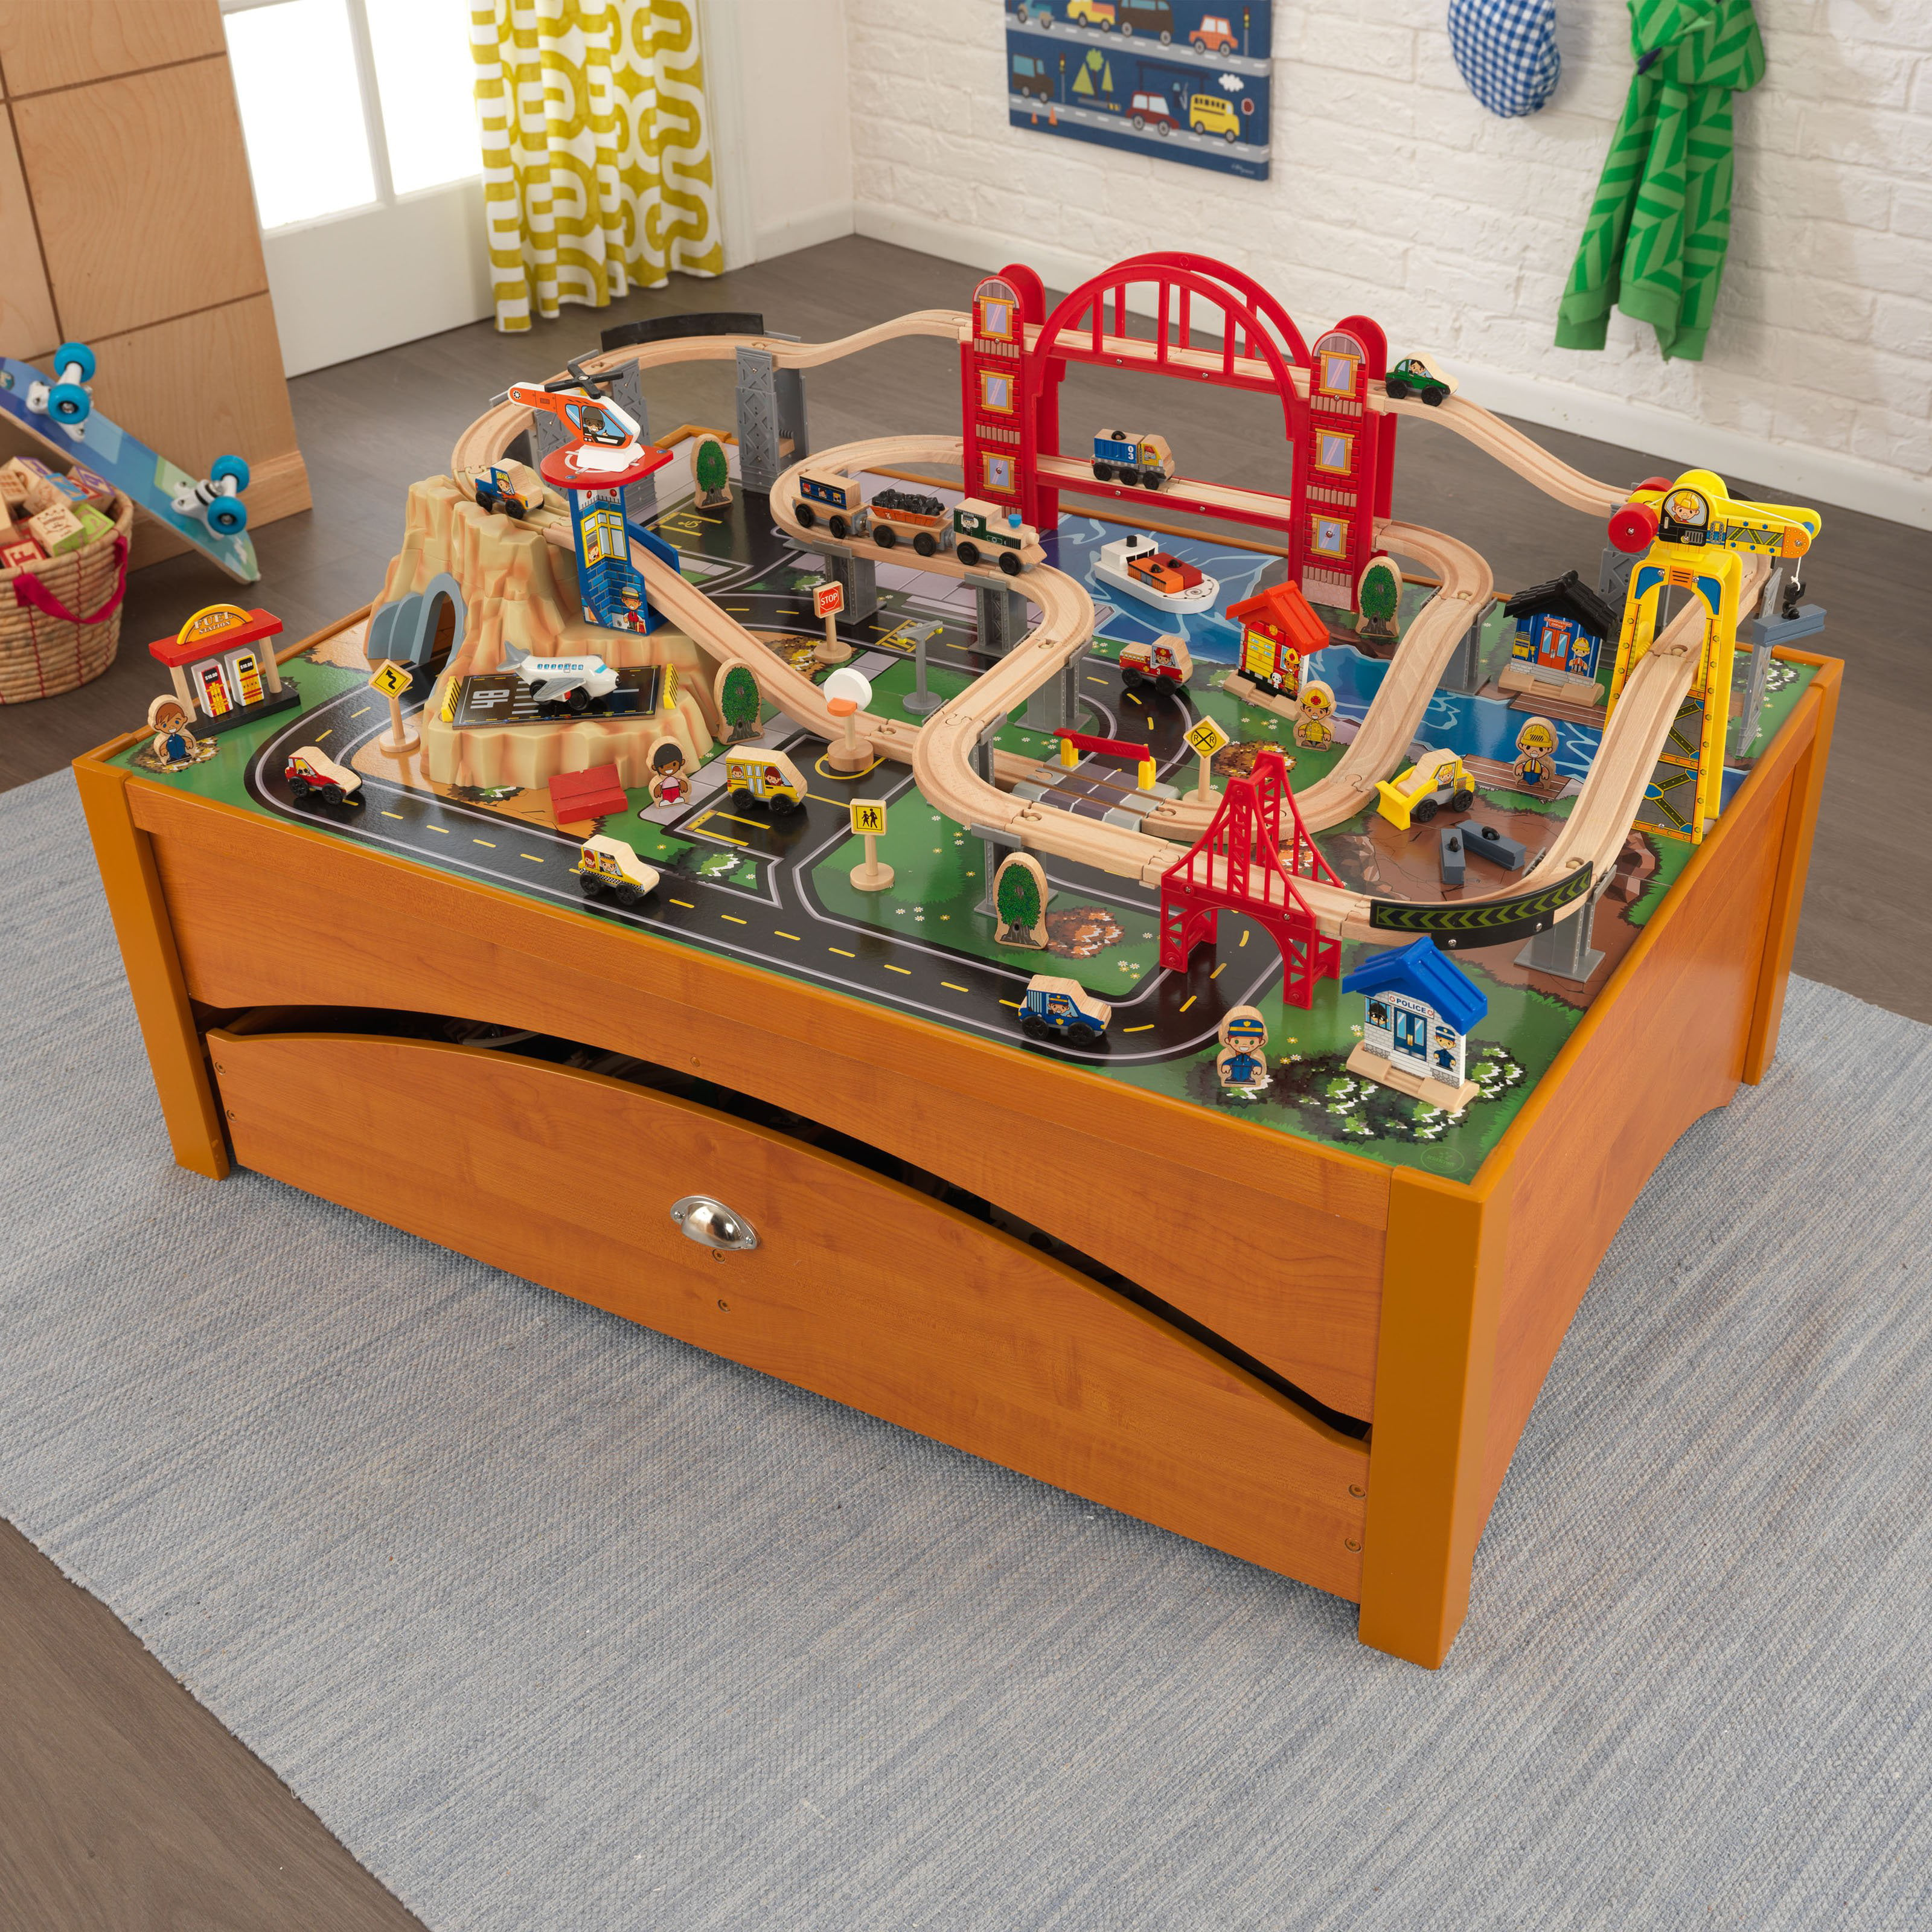 KidKraft Rapid Waterfall Train Set U0026 Table With 48 Accessories Included    Walmart.com